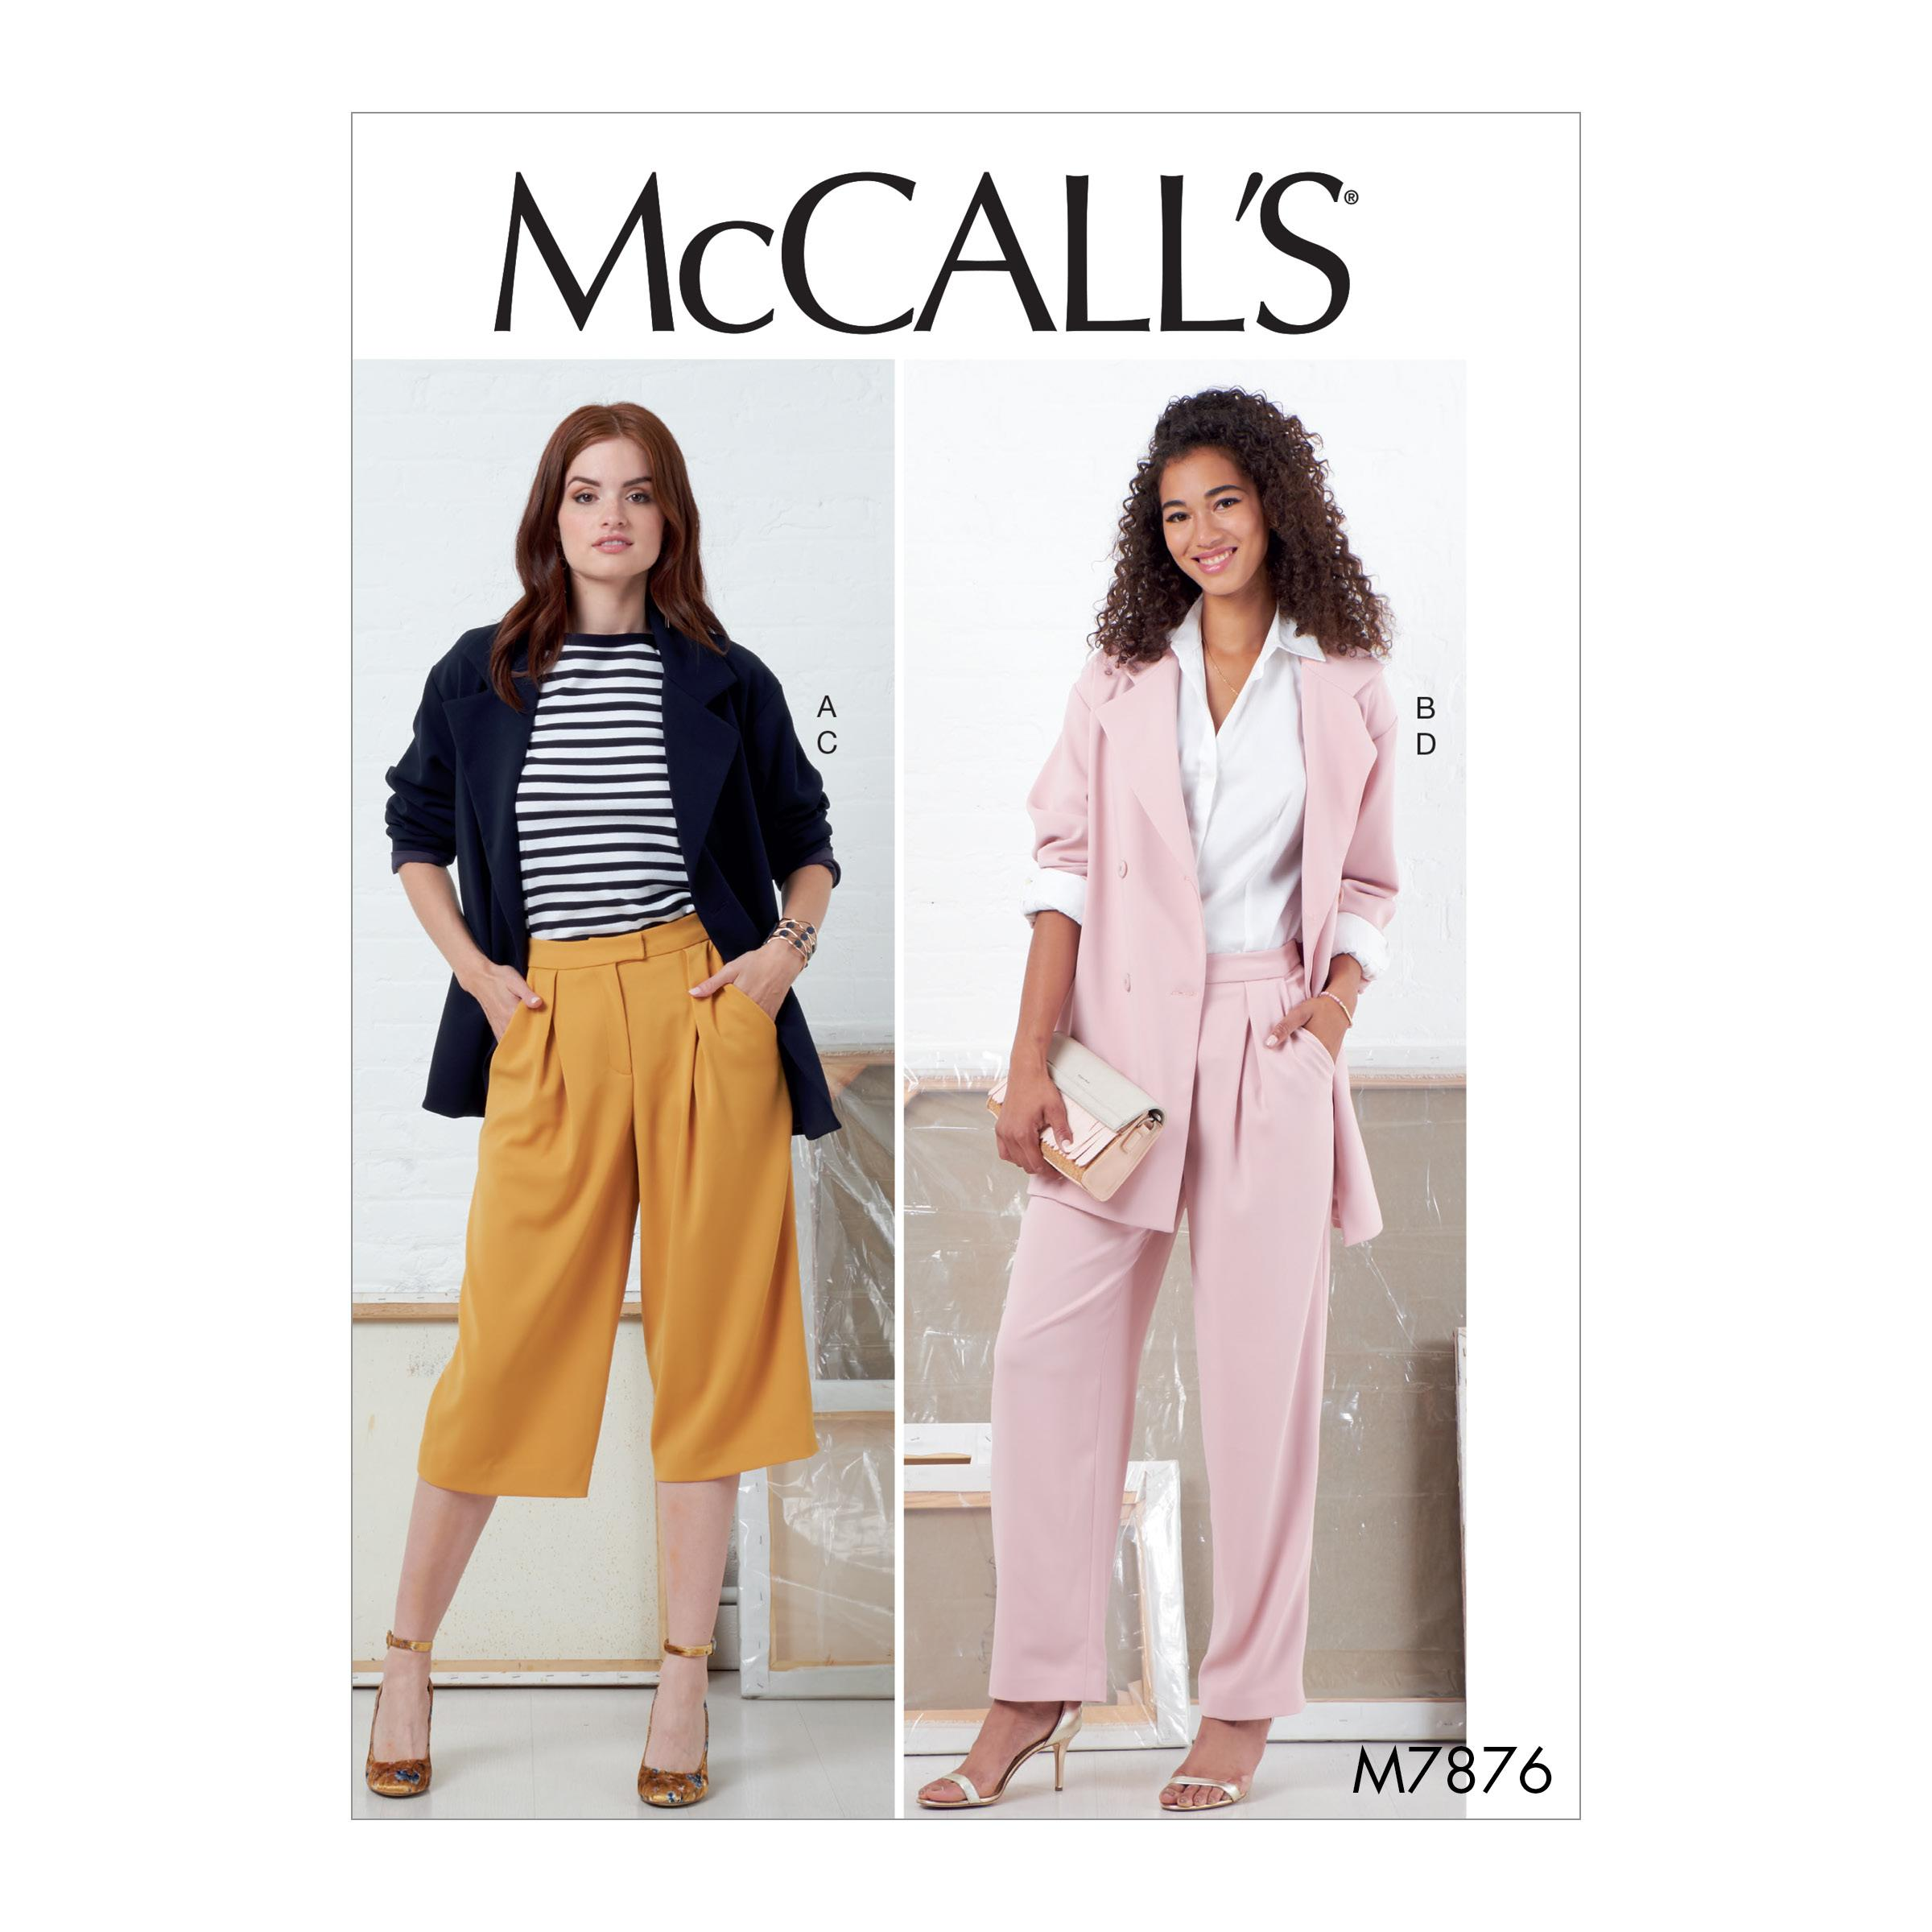 McCalls M7876 Misses Jackets & Vests, Misses Pants, Jumpsuits & Shorts, Misses Coordinates